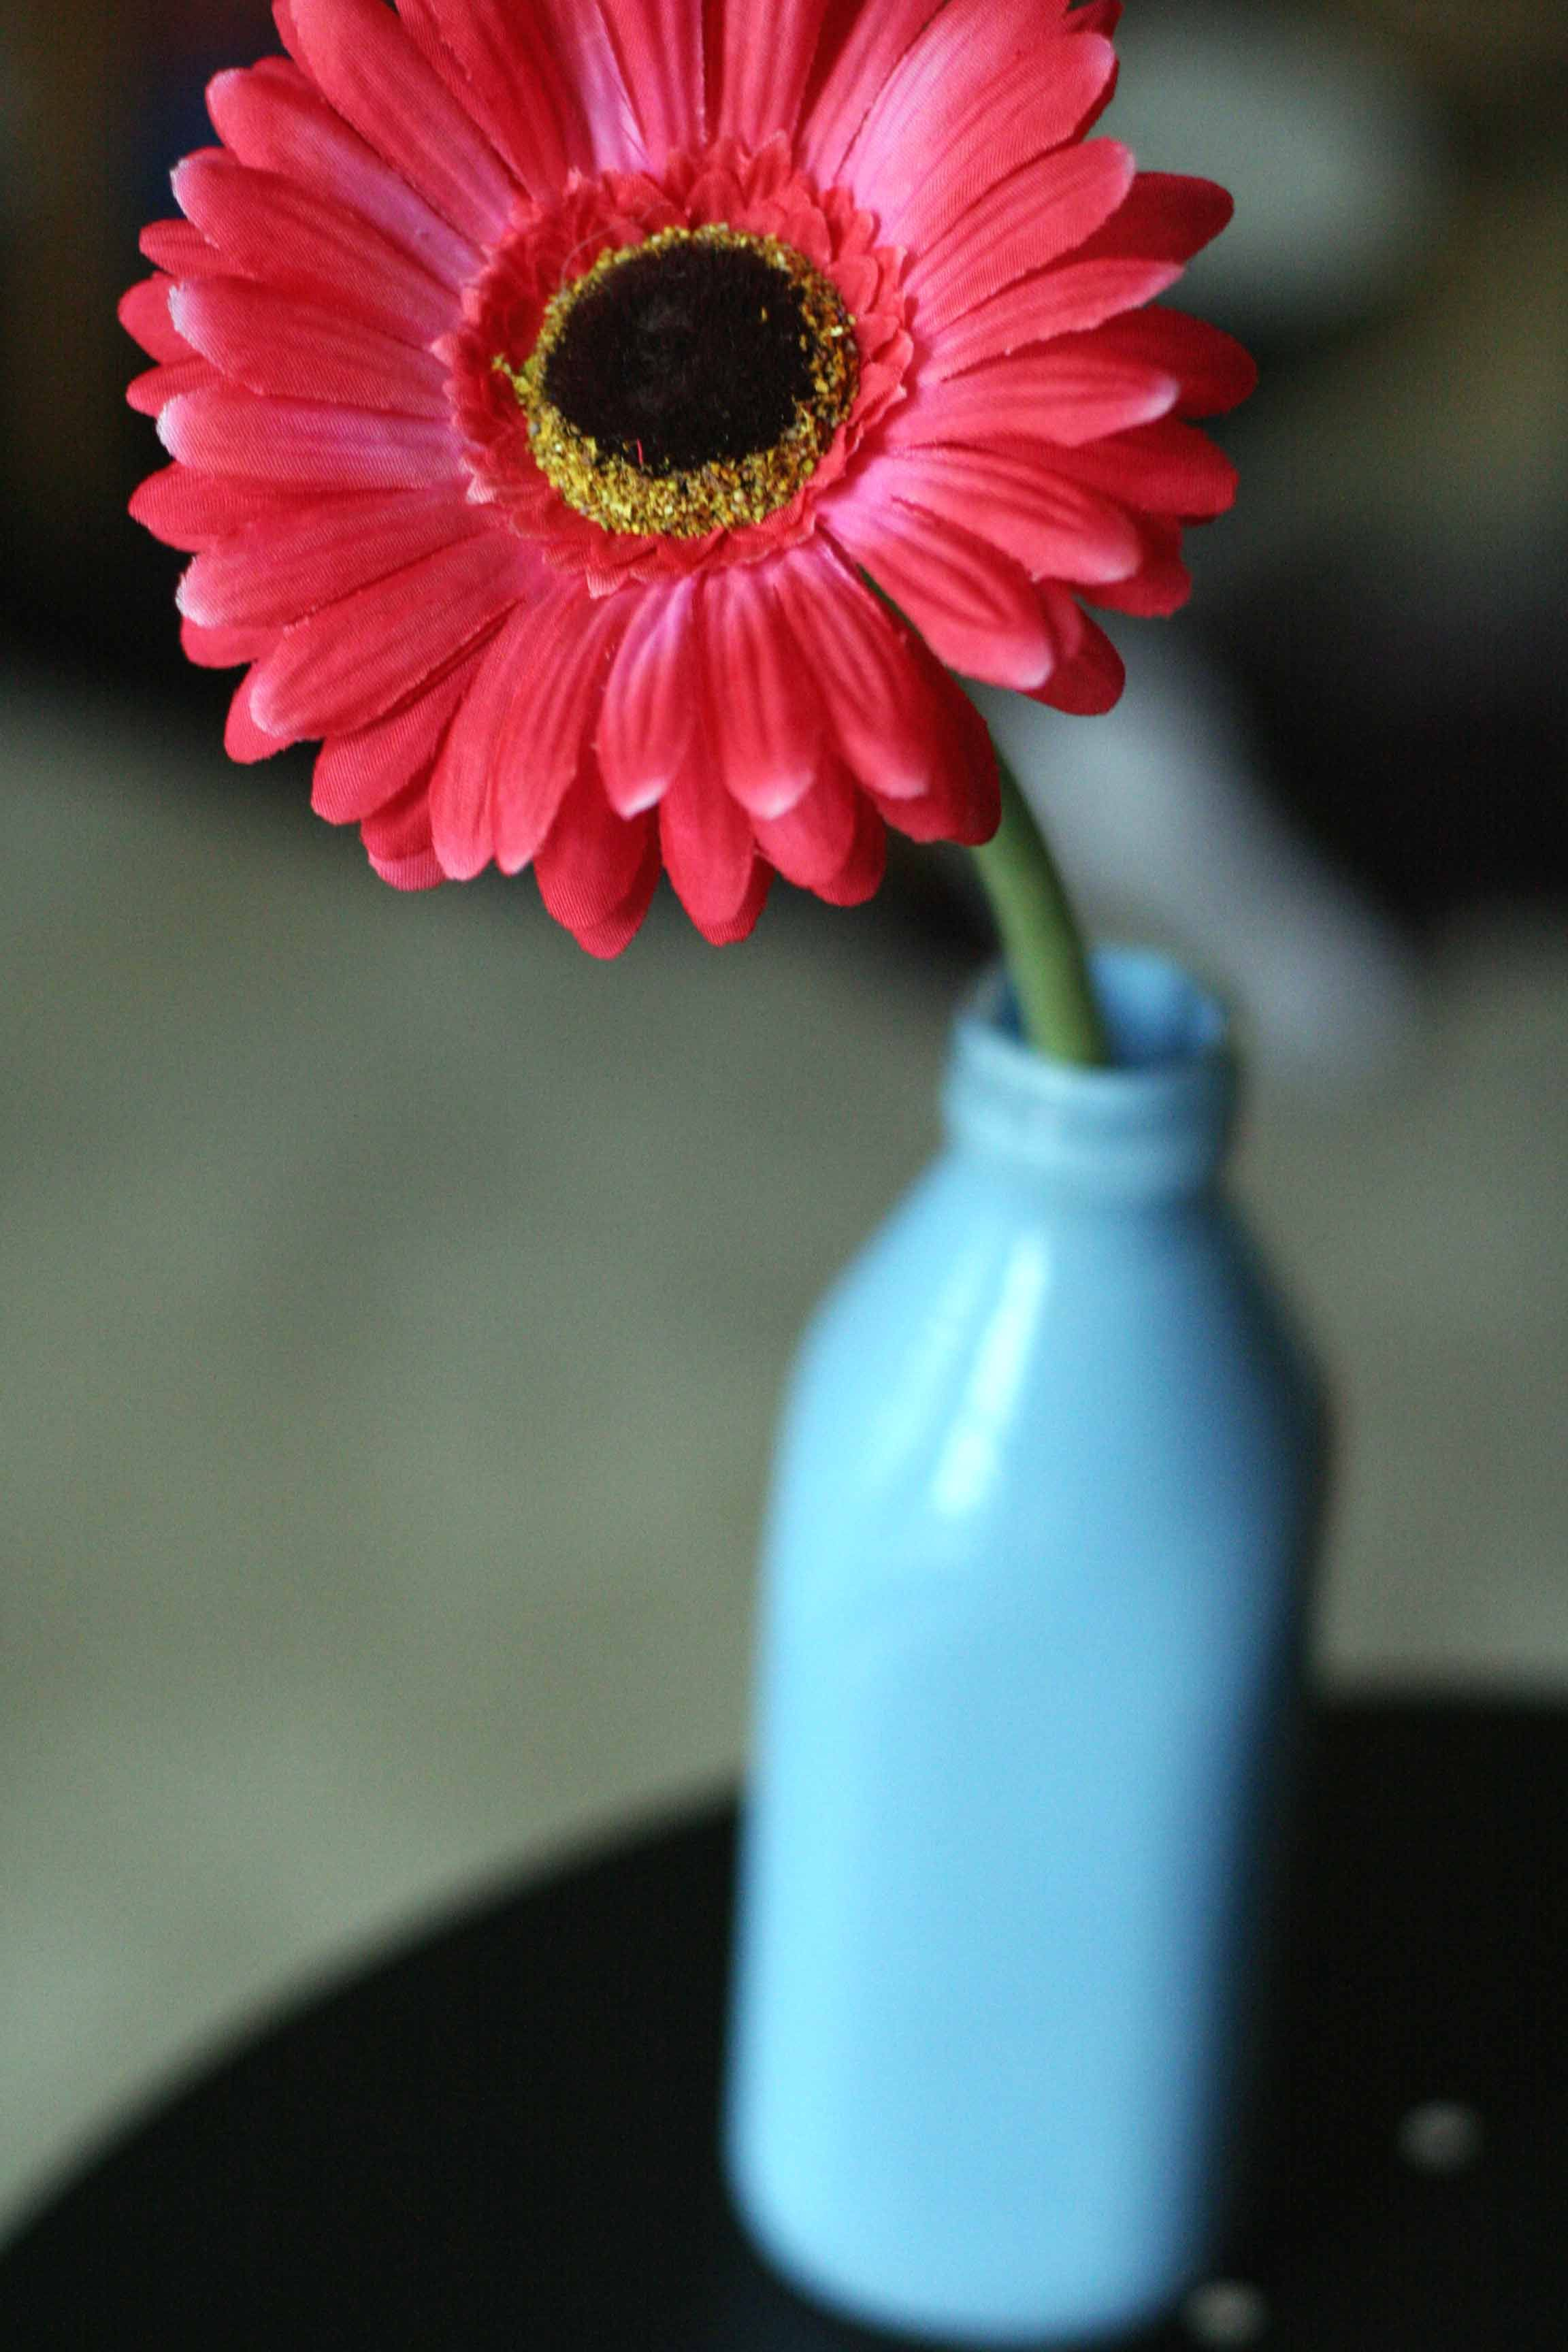 pink and blue flower bud vase - Google Search | Appreciation ...